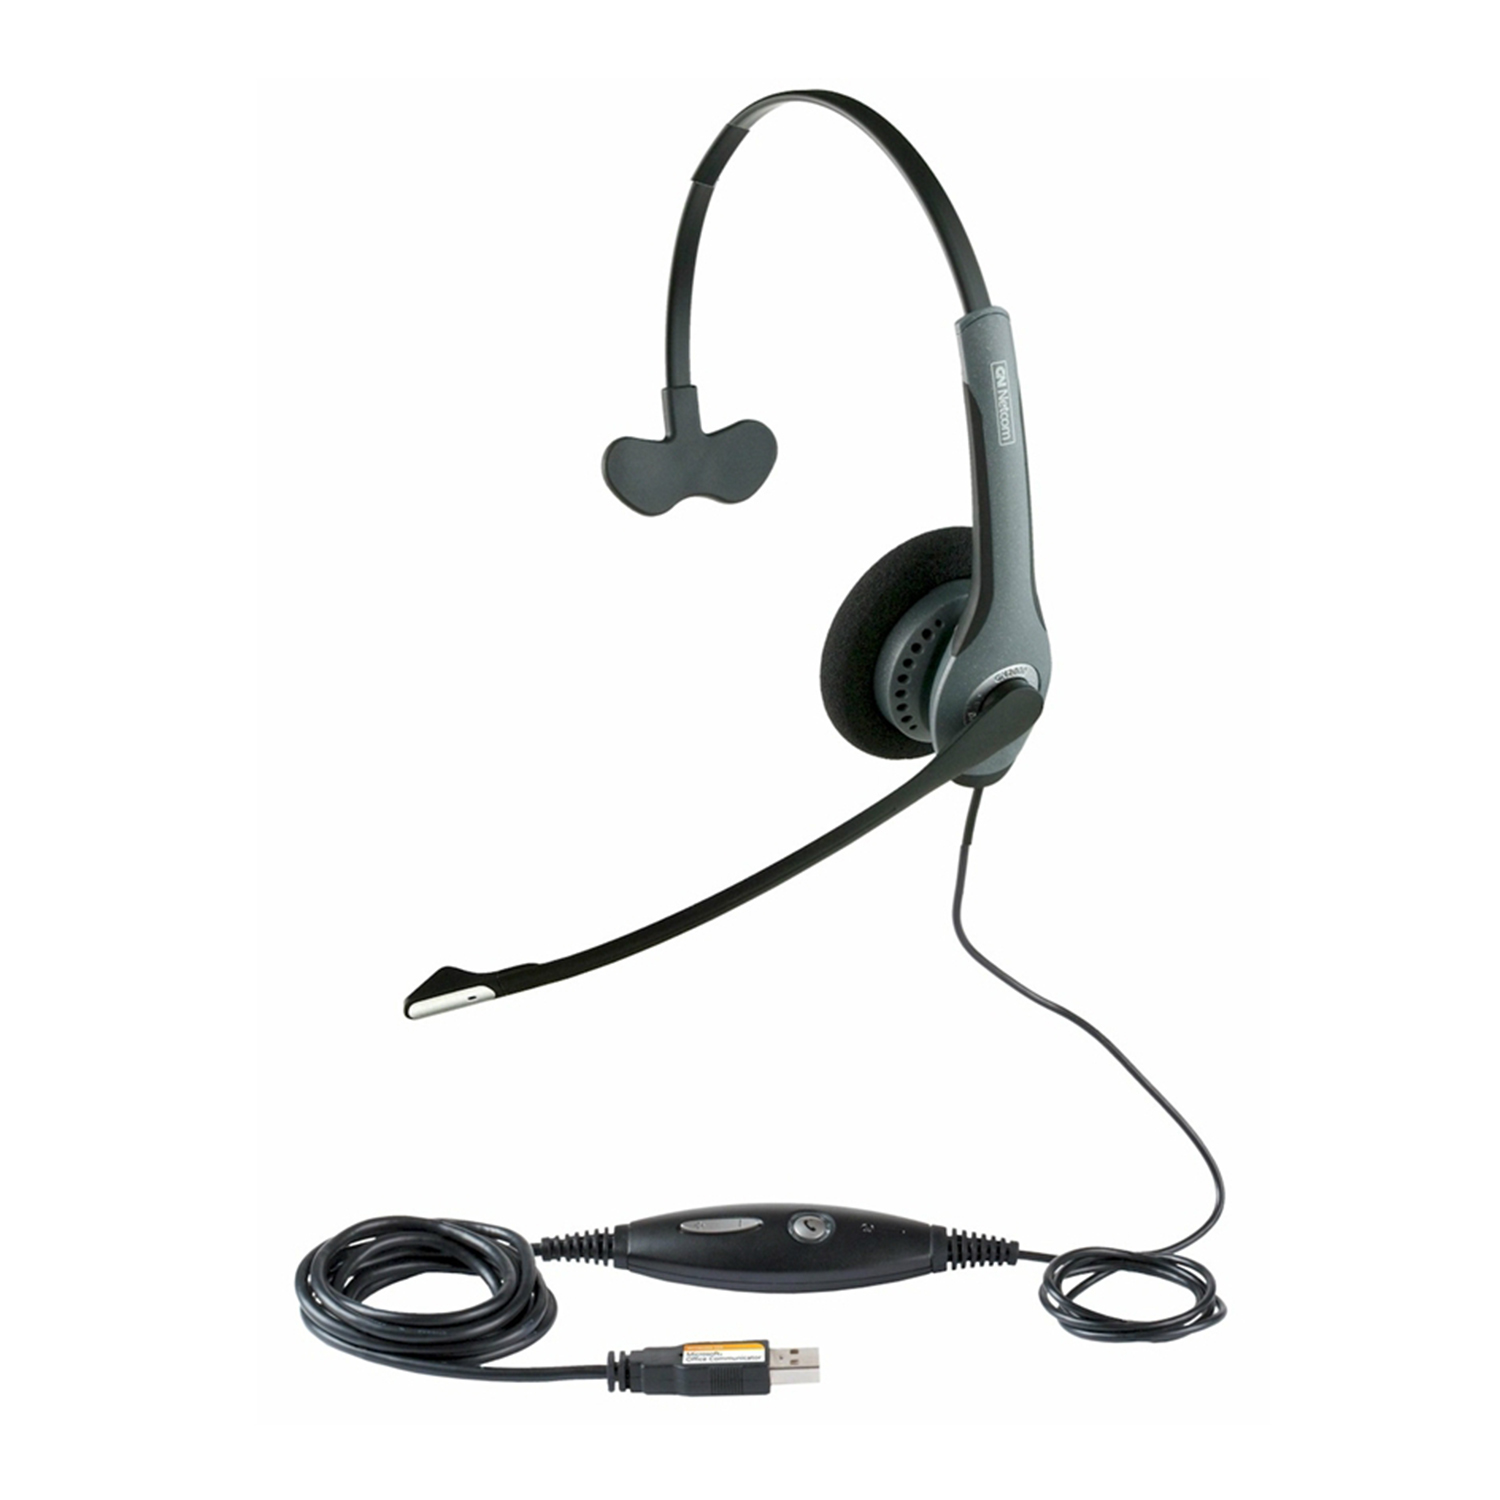 GN NETCOM GN2000 HEADSET DRIVERS FOR WINDOWS 8